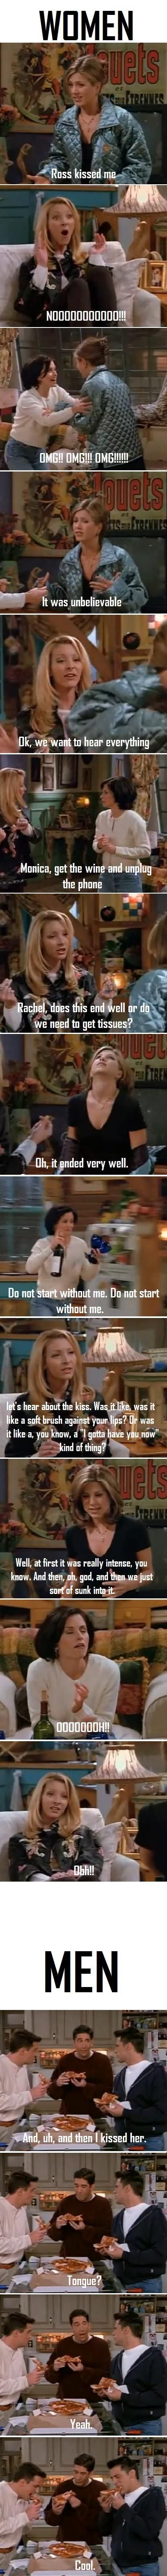 Yup the difference between men and women couldn't have been explained any better than through FRIENDS. :)